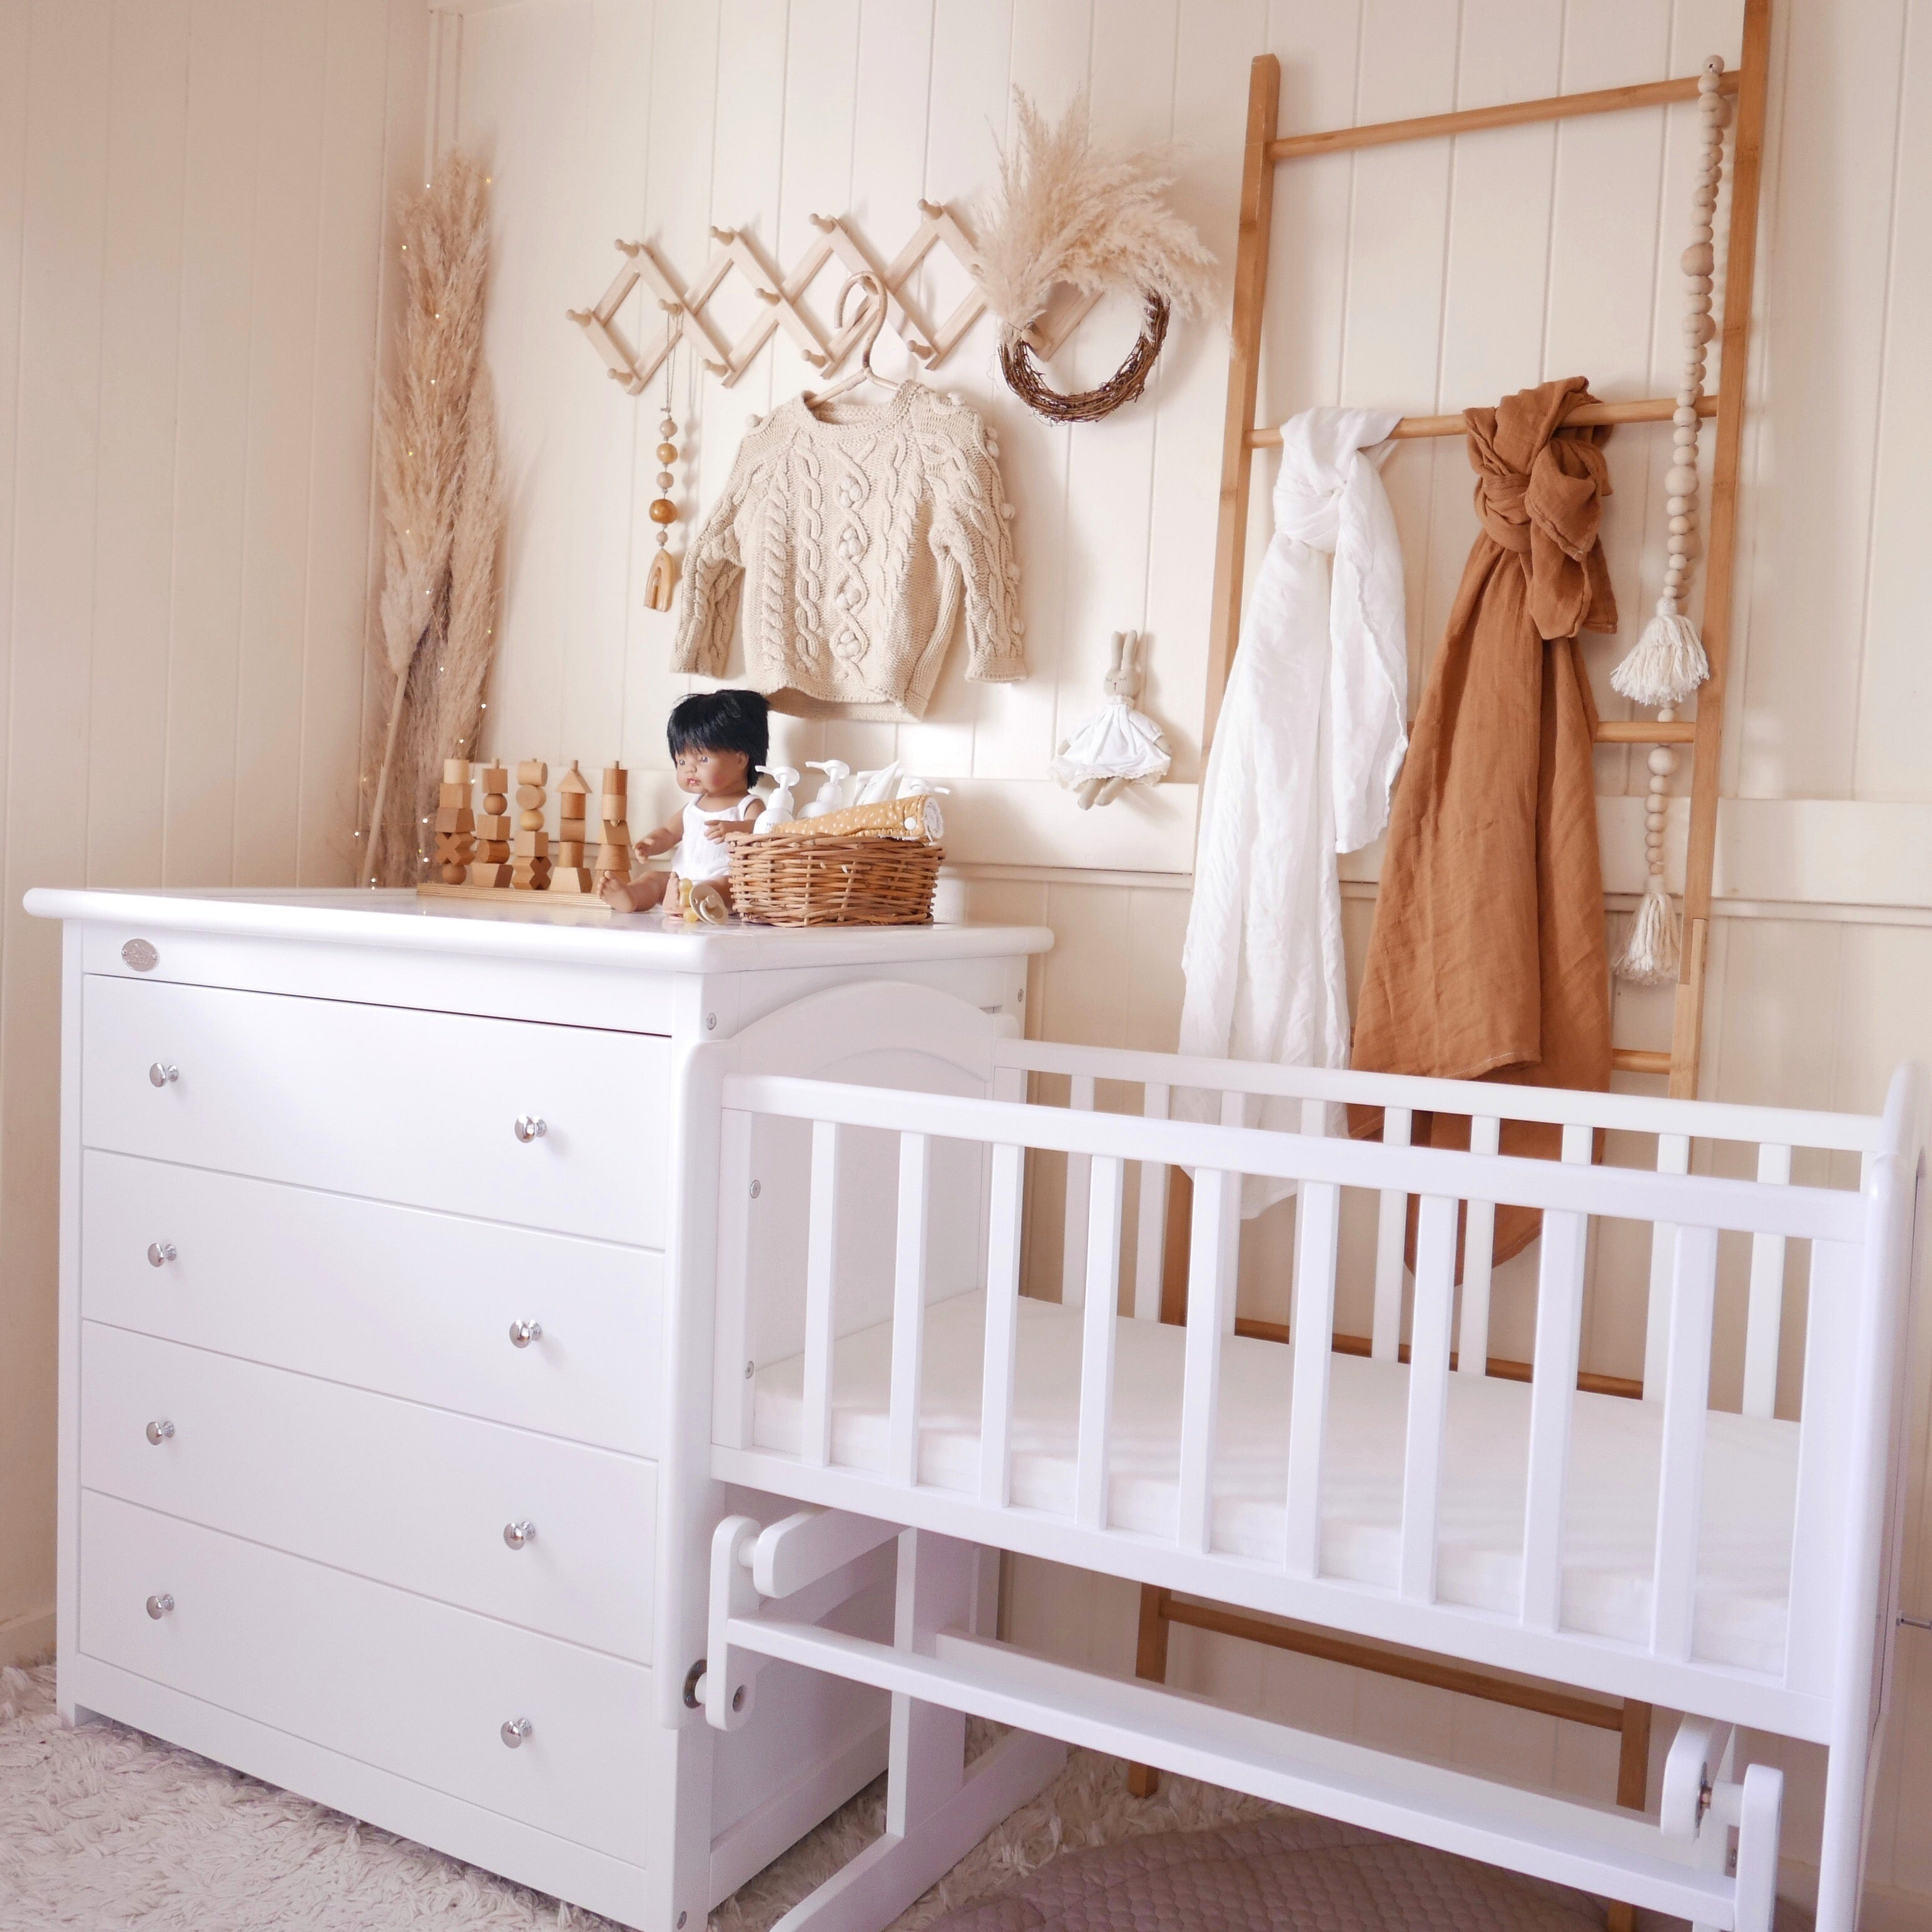 Chest of Drawers and Rocking Cradle with Cradle Mattress Styled